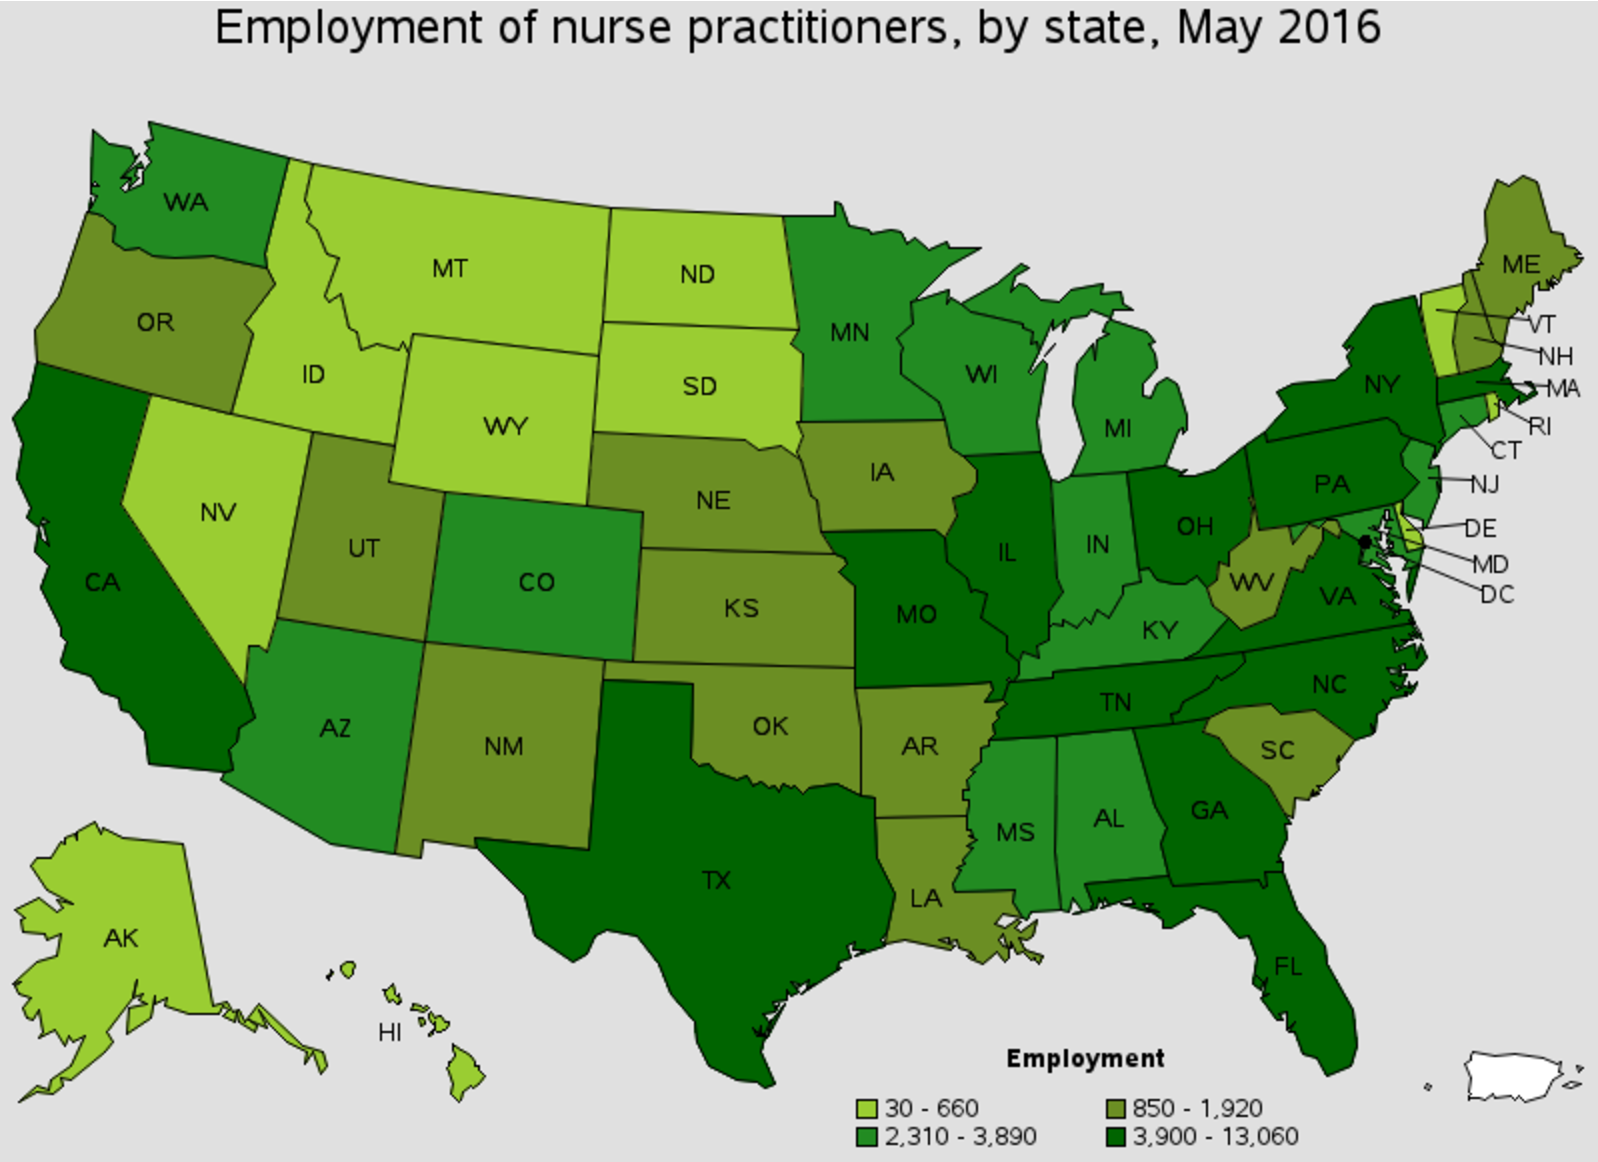 Employment outlook for nurse practitioners in